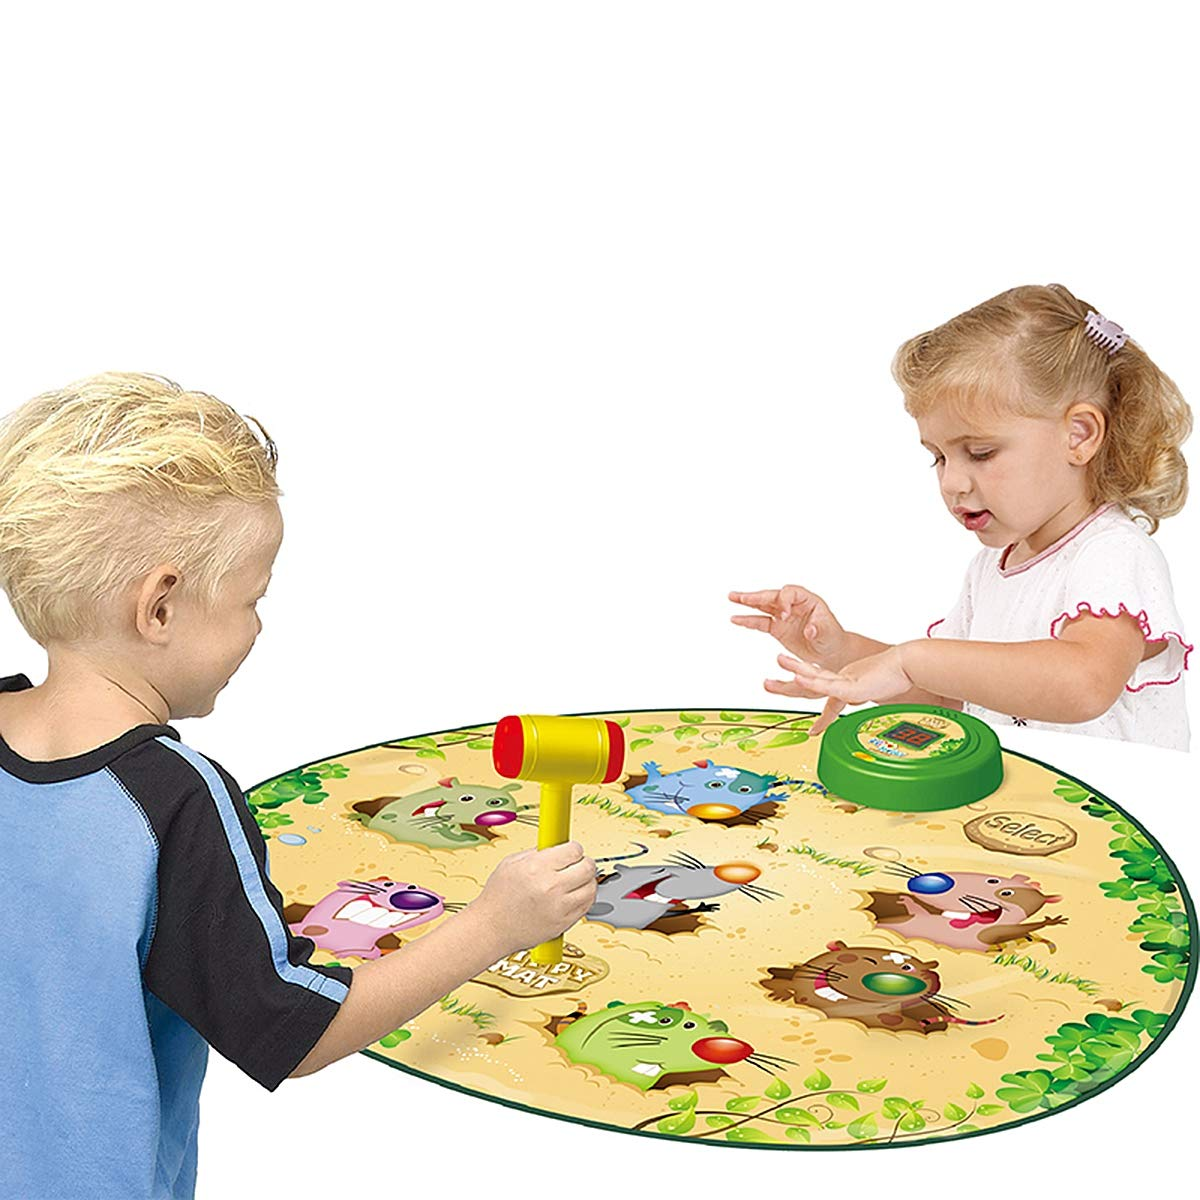 Playing Hamster Game Blanket, Kids Electronic Music Play Mat Security Electronic Keyboard Play Blanket Ideal Toys and Gifts for Children by Eustoma (Image #2)